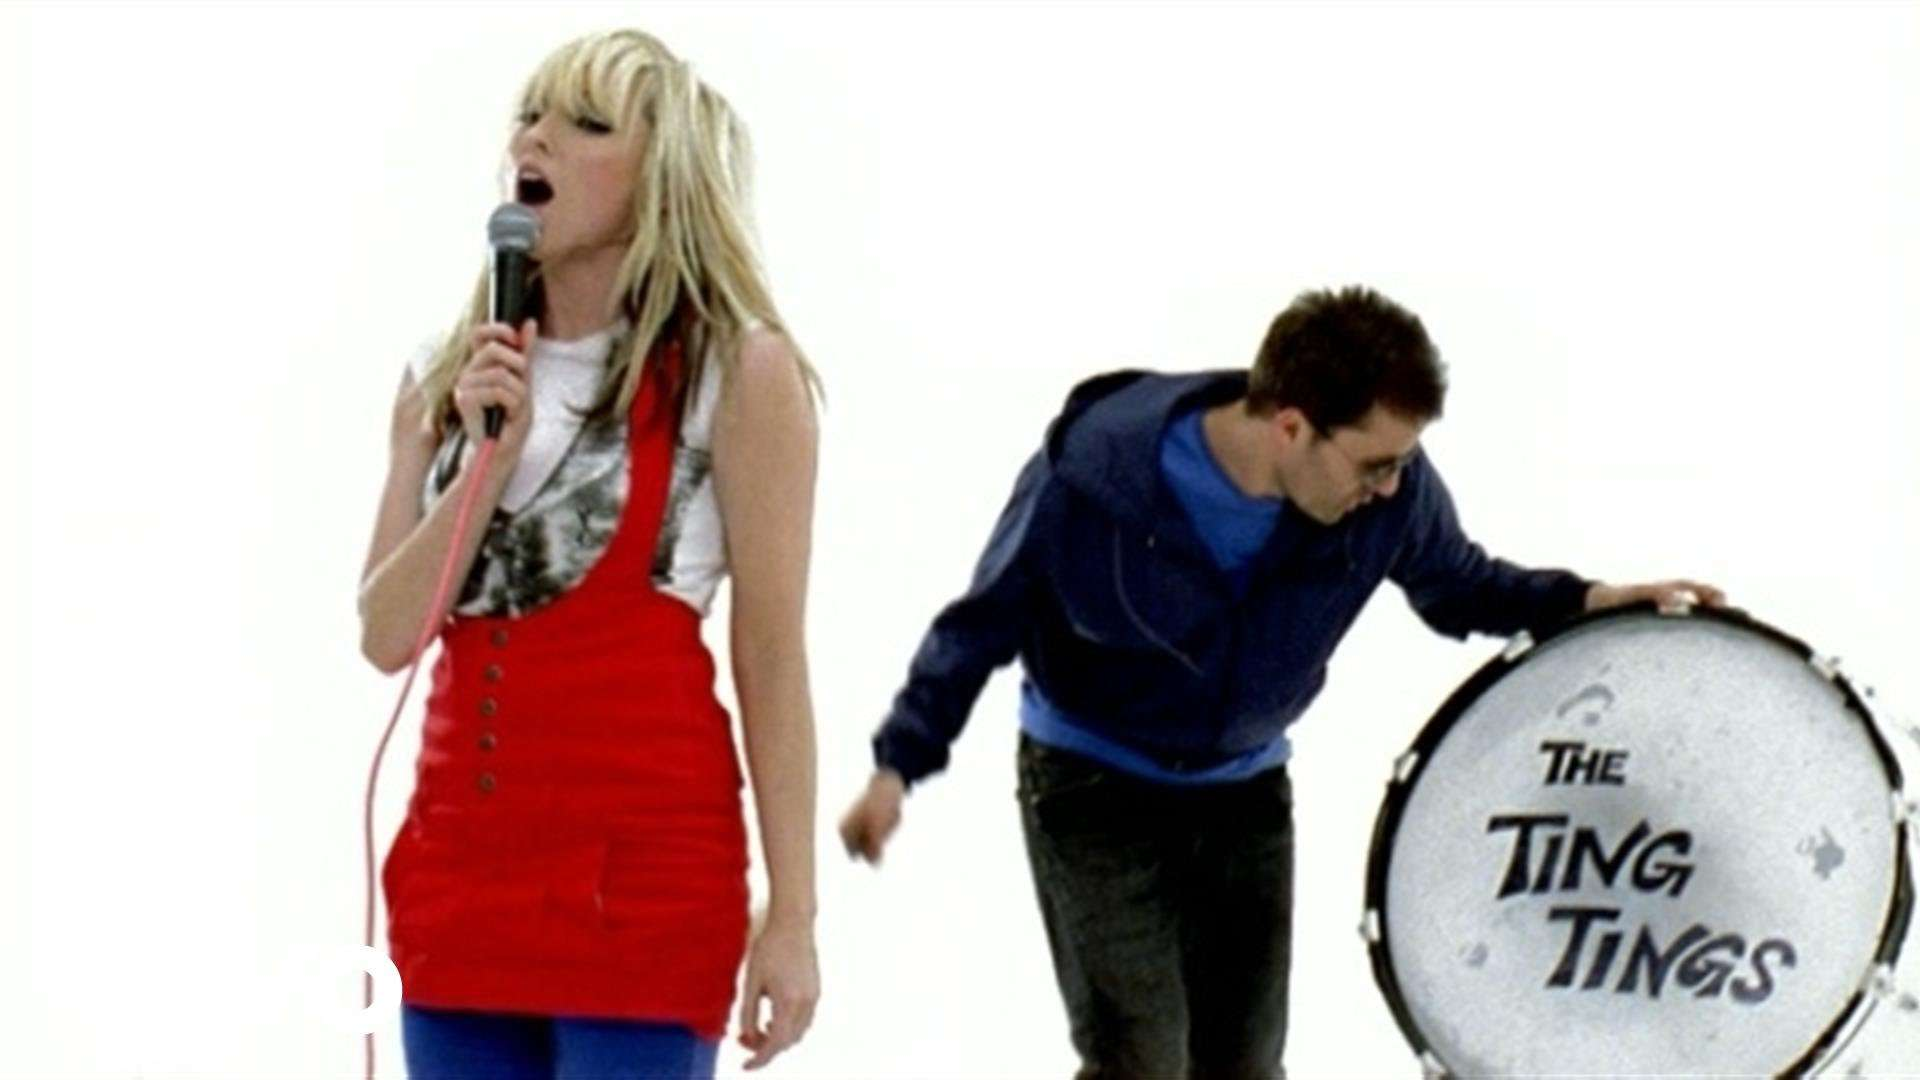 The Ting Tings - That's Not My Name - YouTube